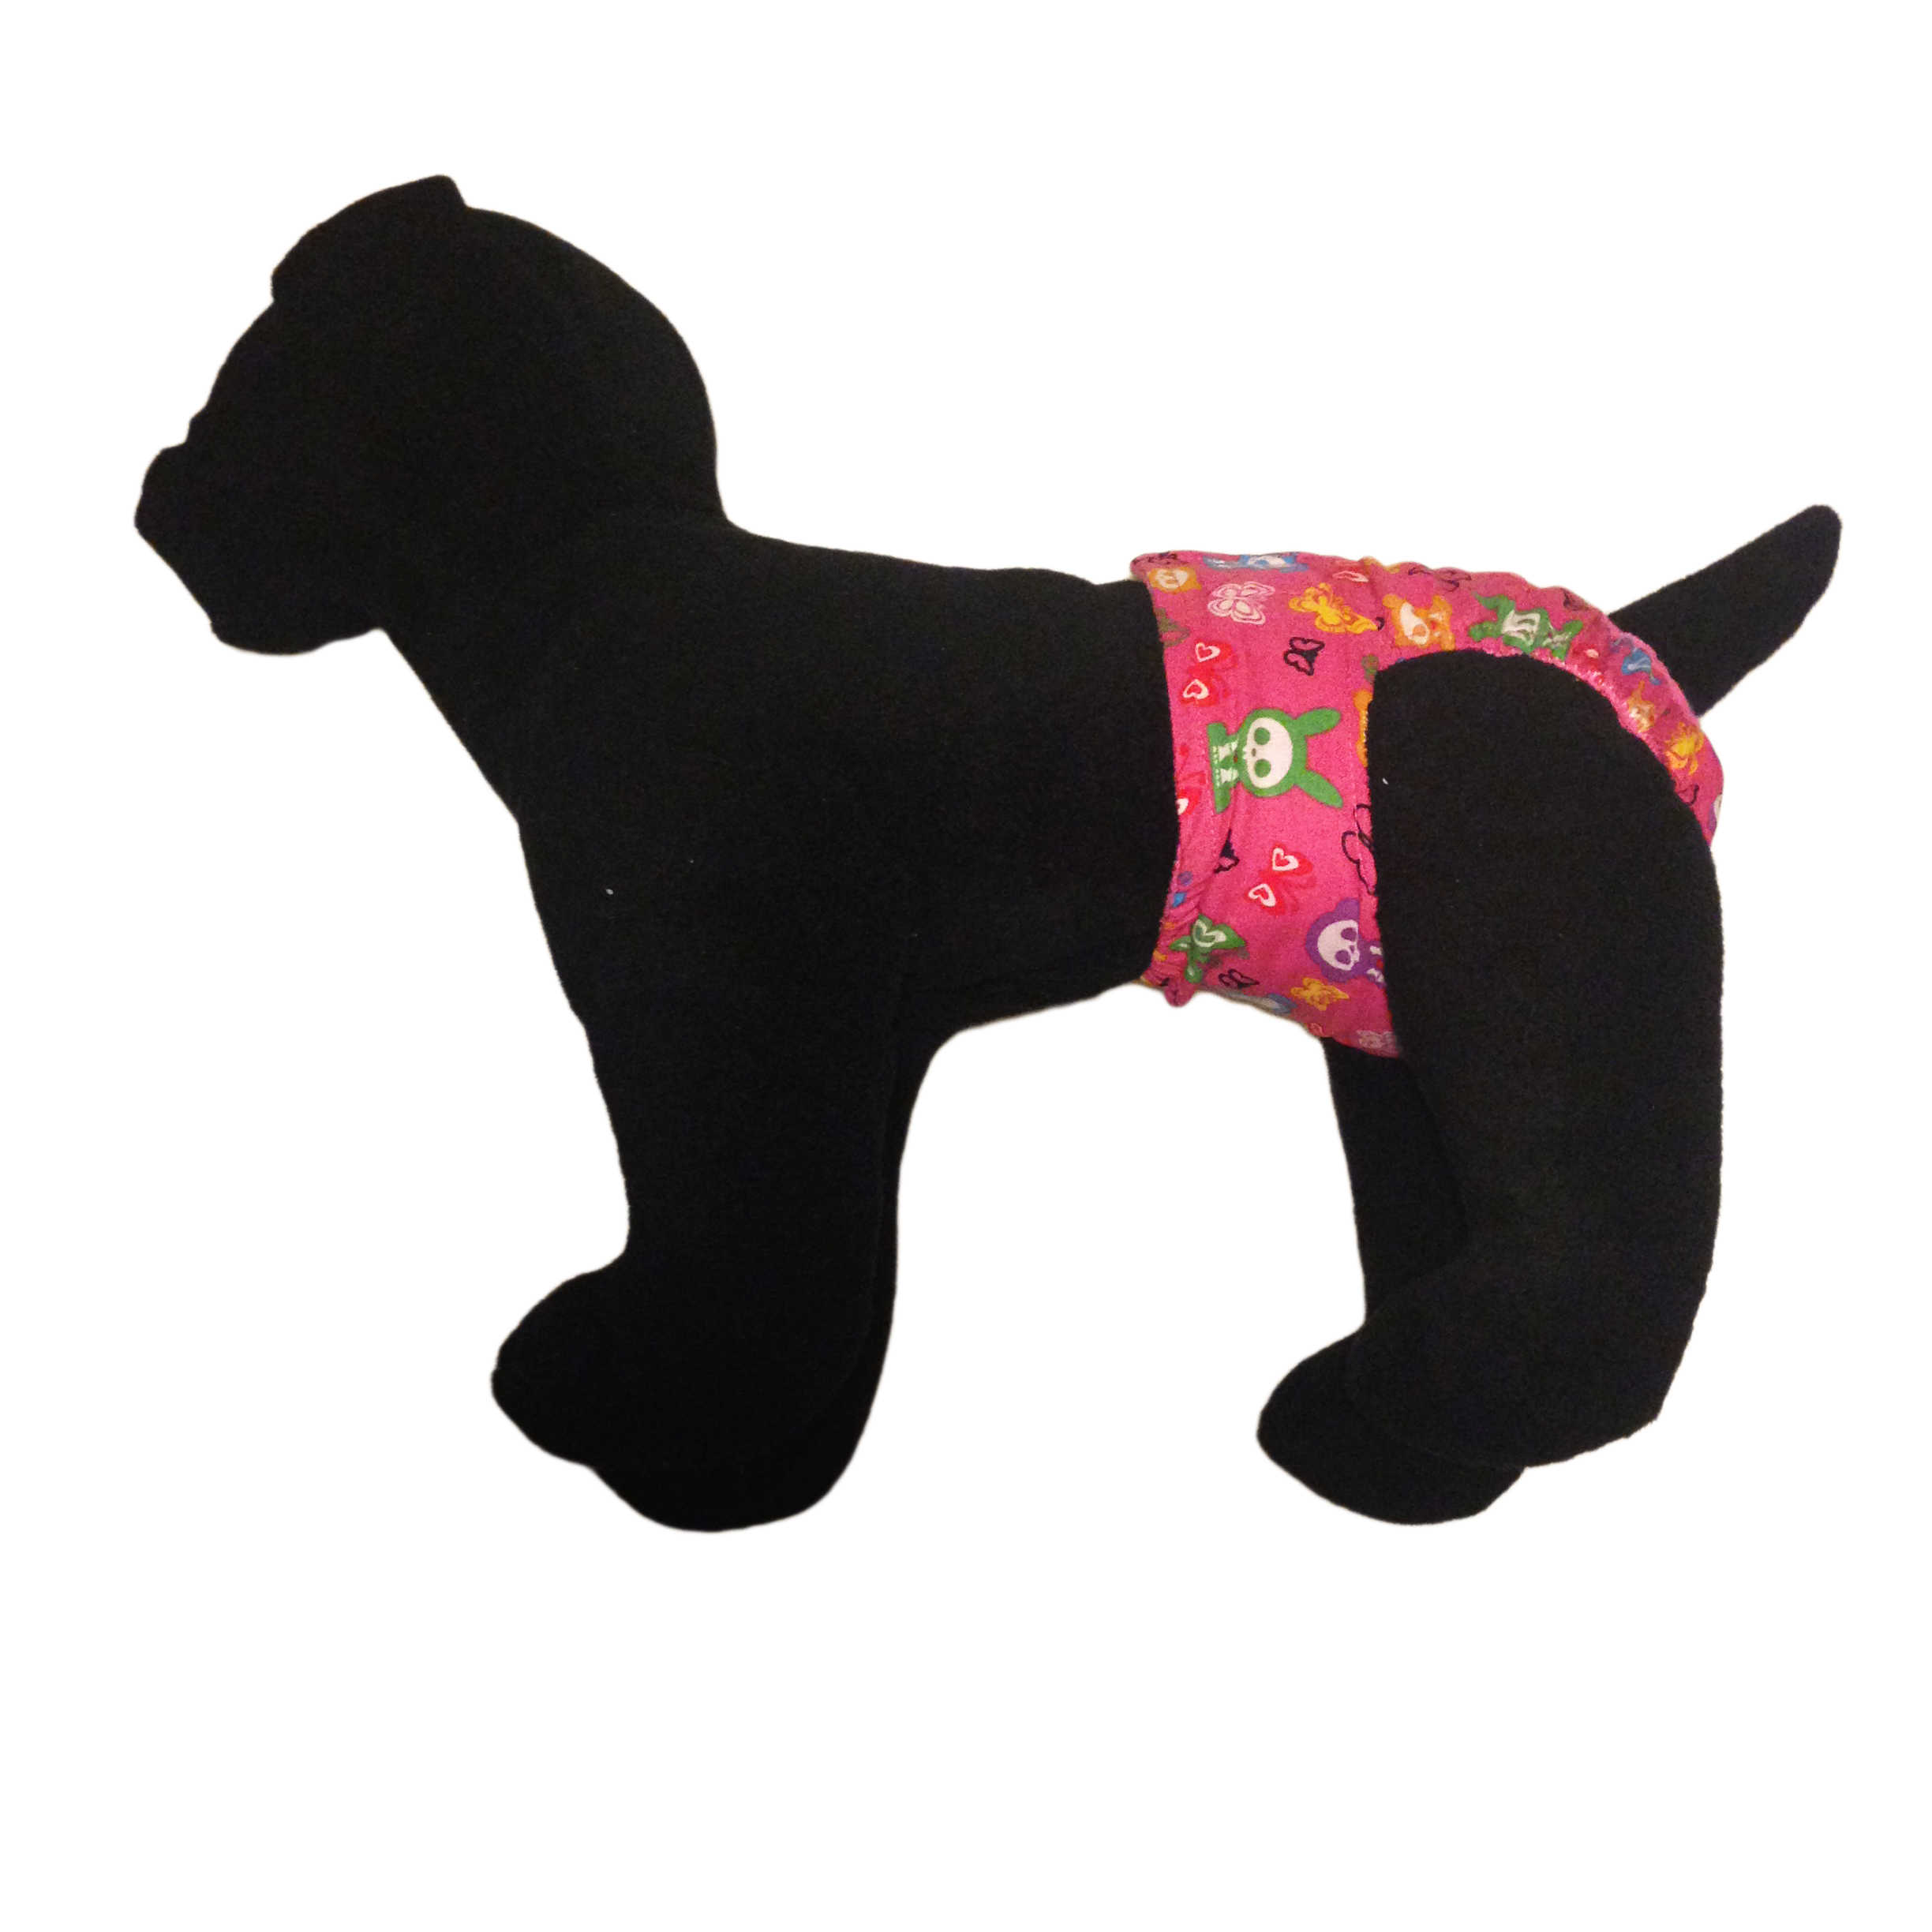 Barkertime Skeleton Figures On Pink Washable Dog Diaper